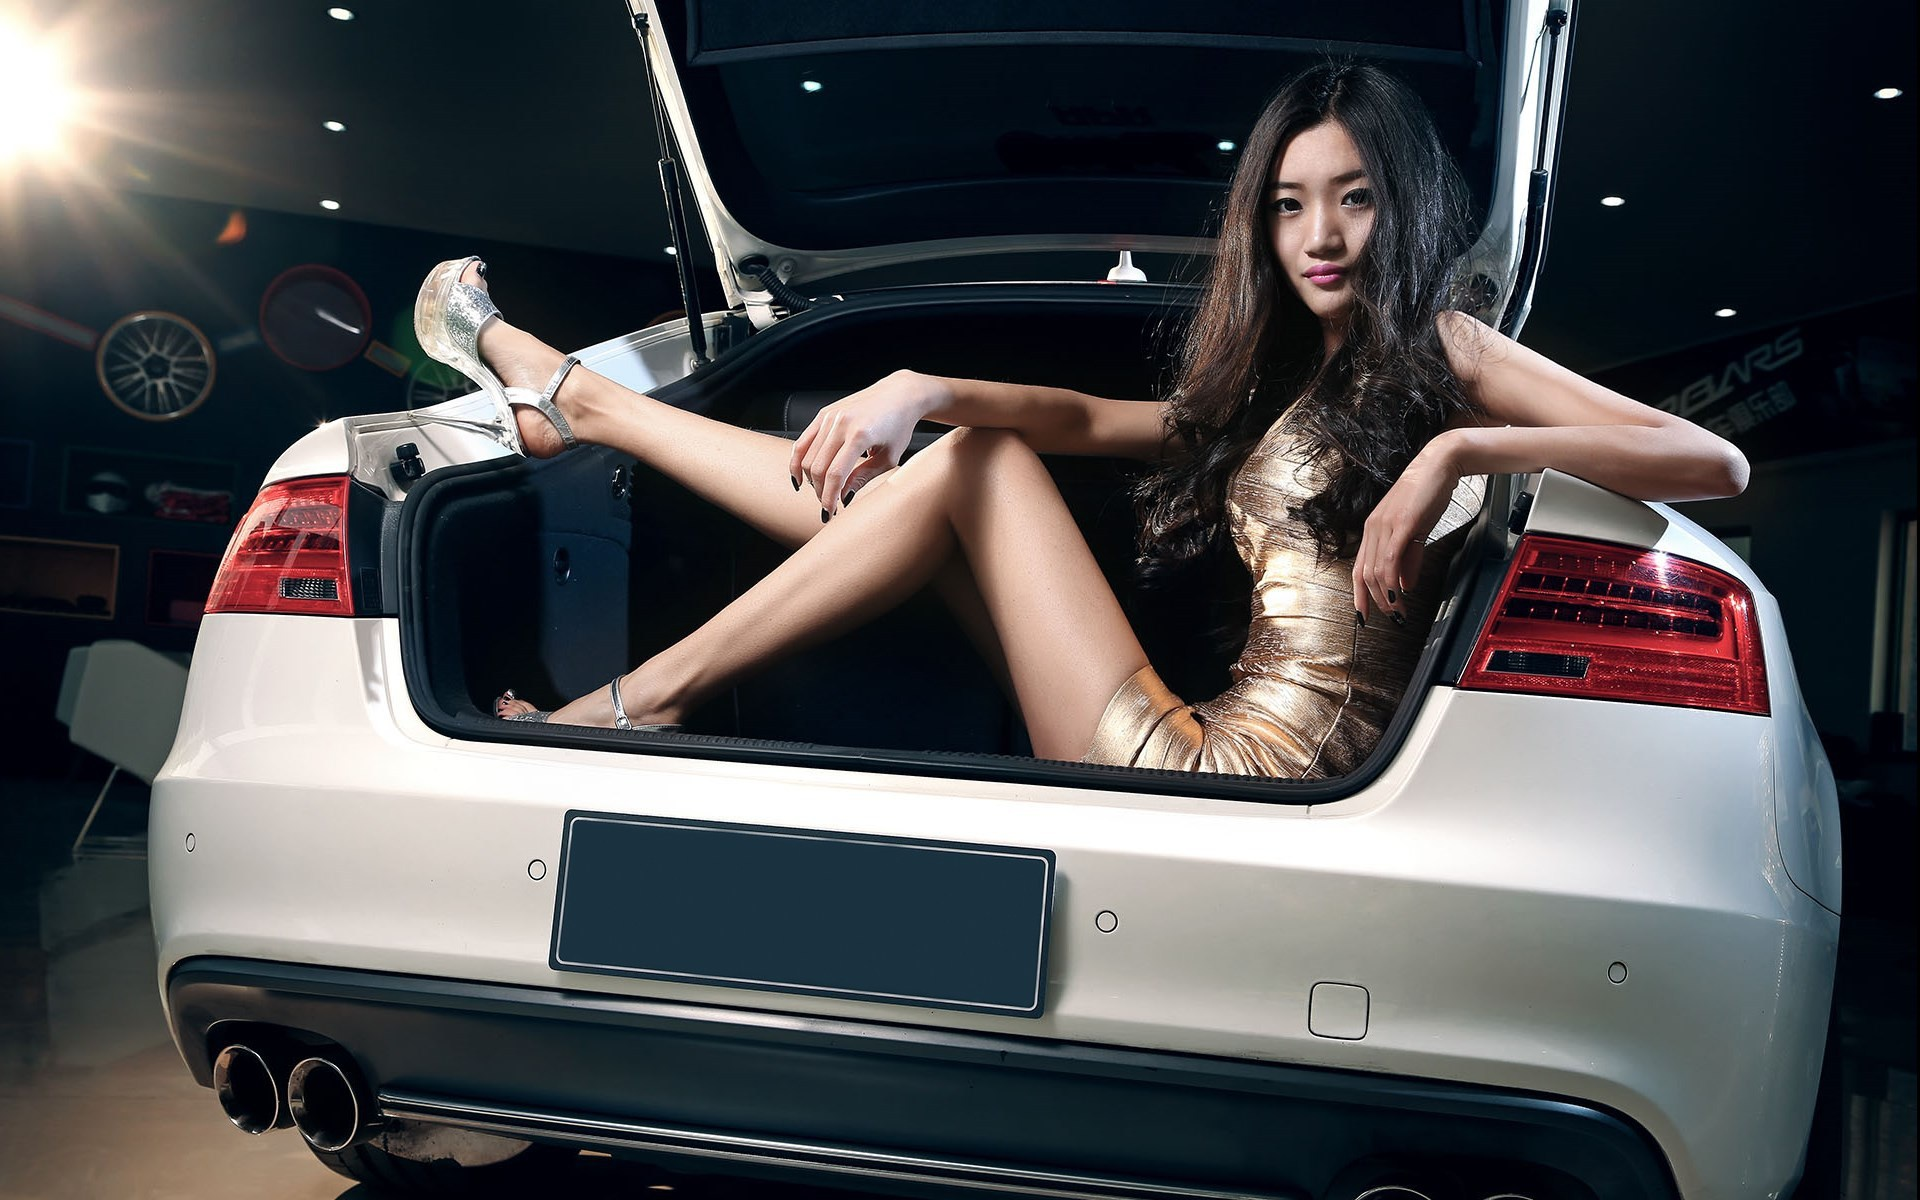 hot-asian-girls-humping-and-cars